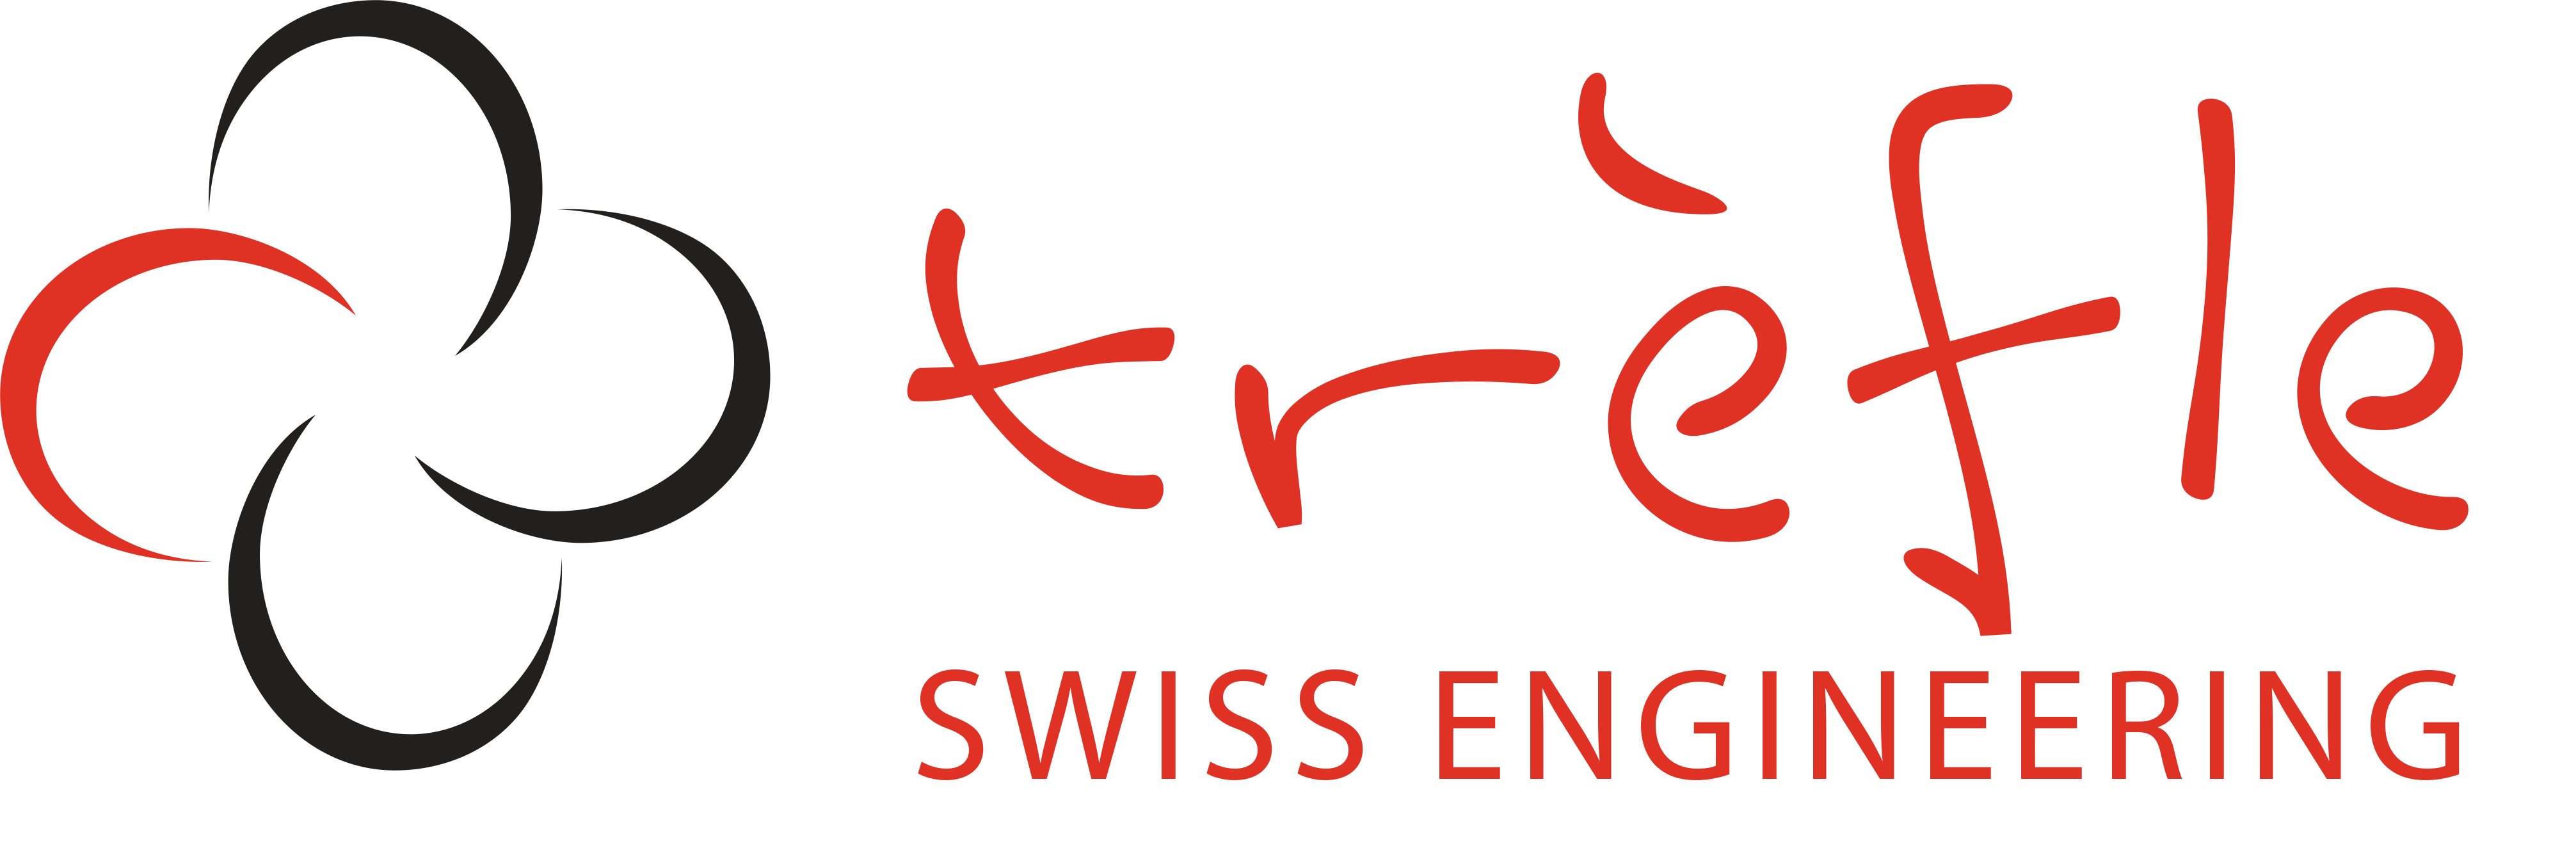 Trèfle Swiss Engineering